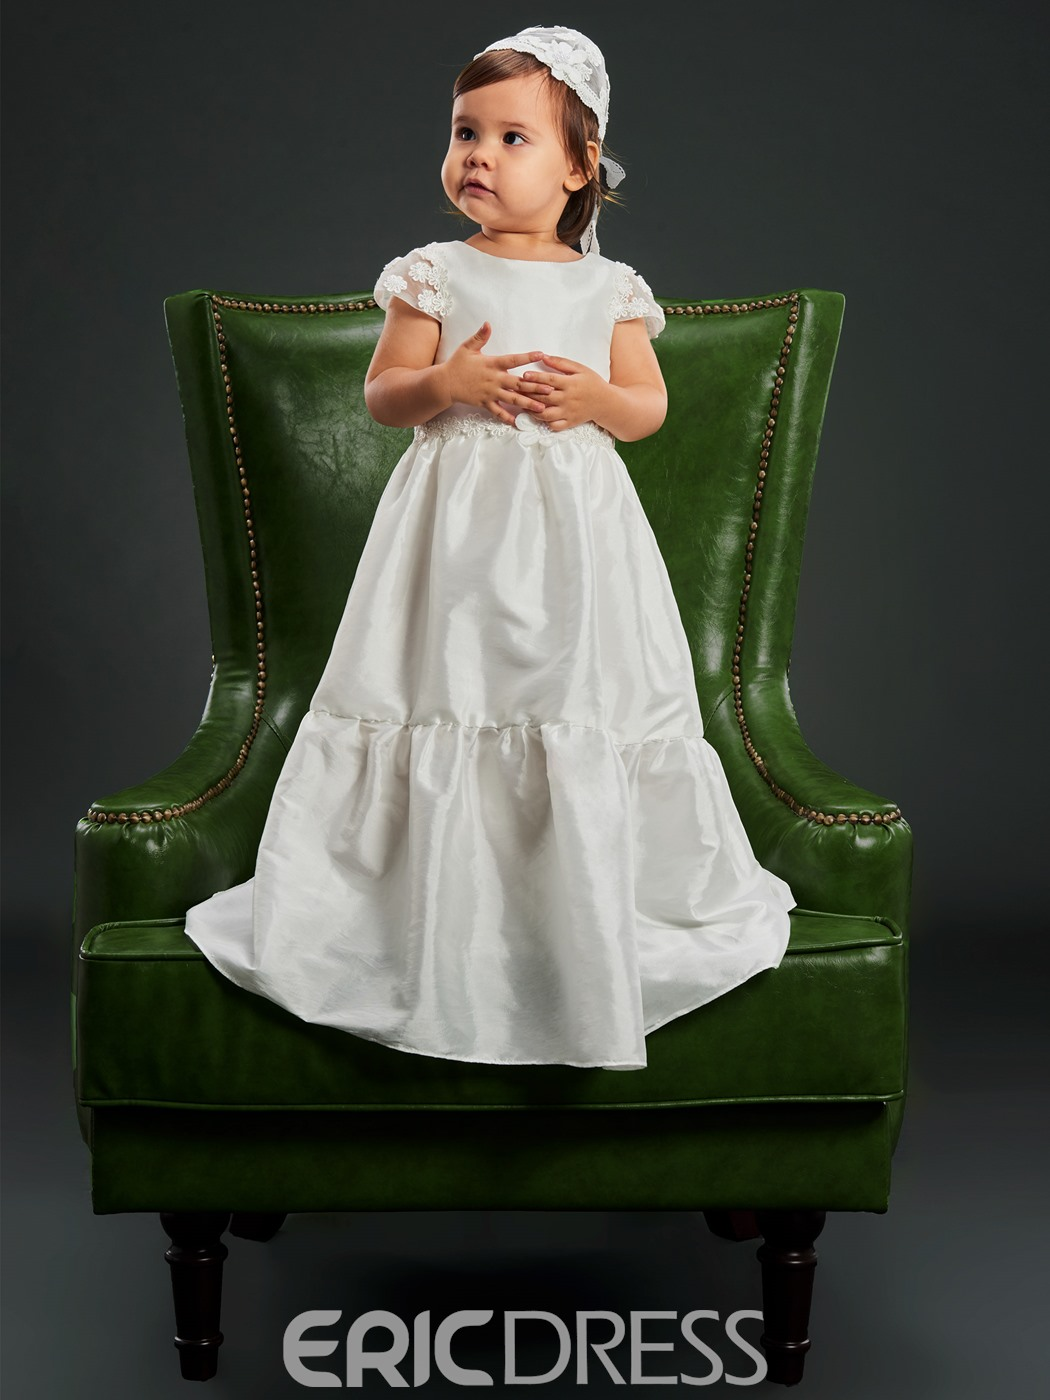 Ericdress Baby Girls Simple Christening Gown for Baptism with Hat